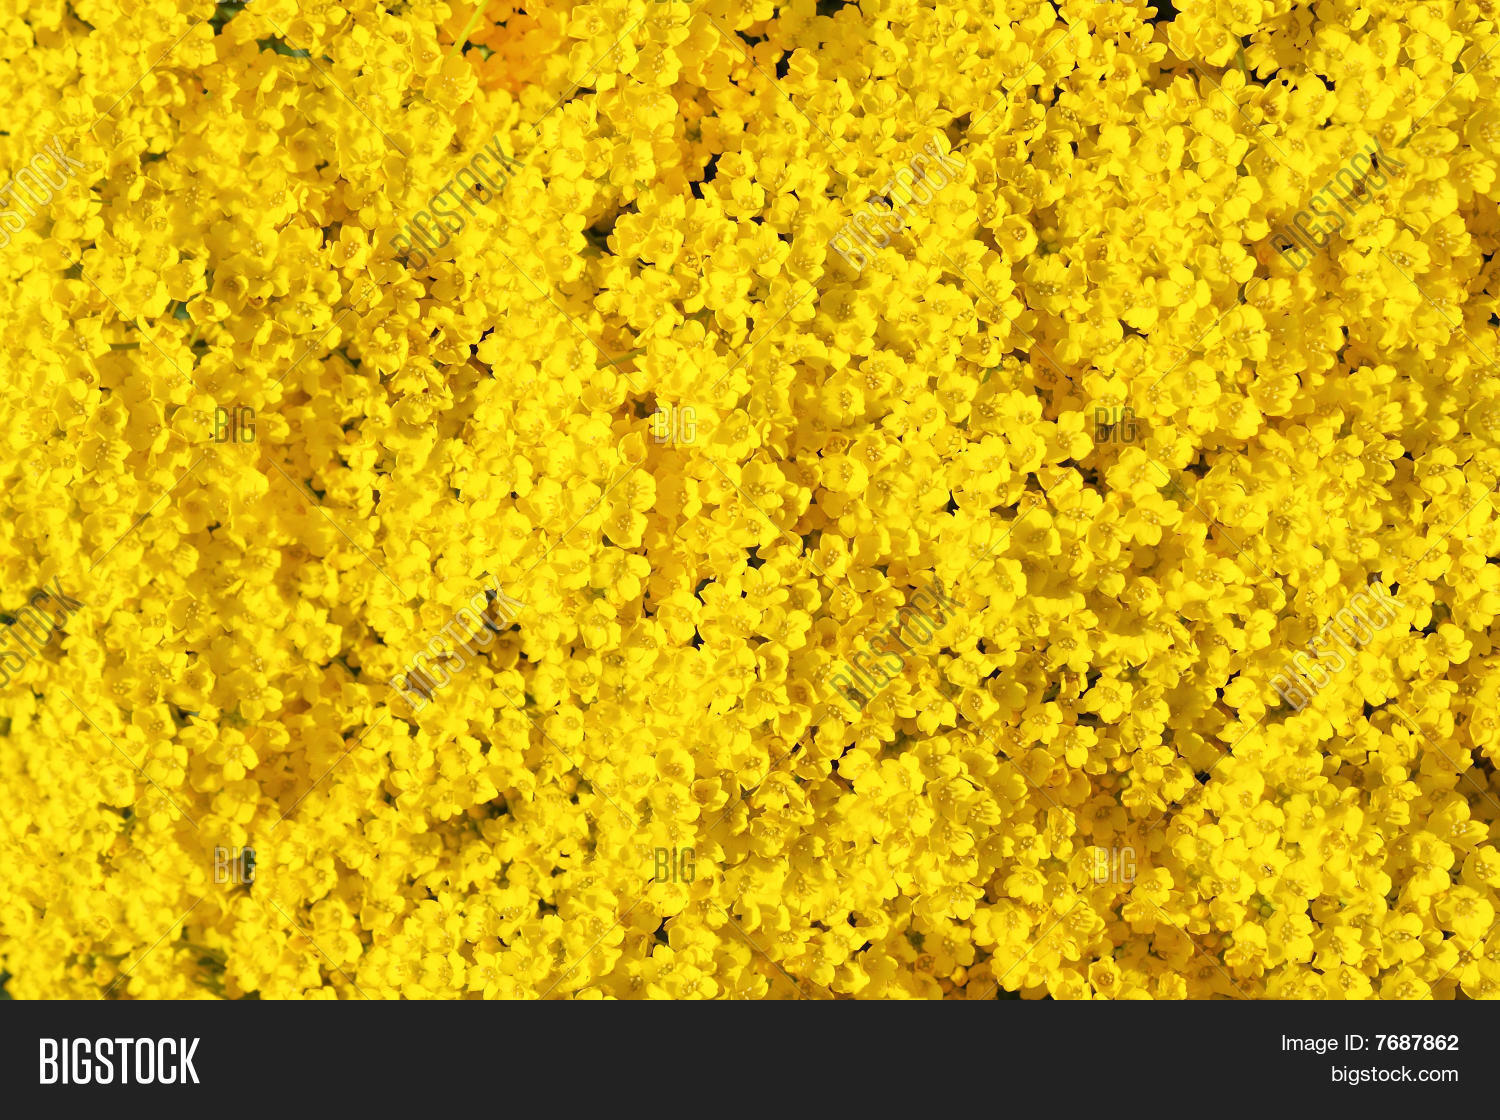 Real Yellow Flowers Background